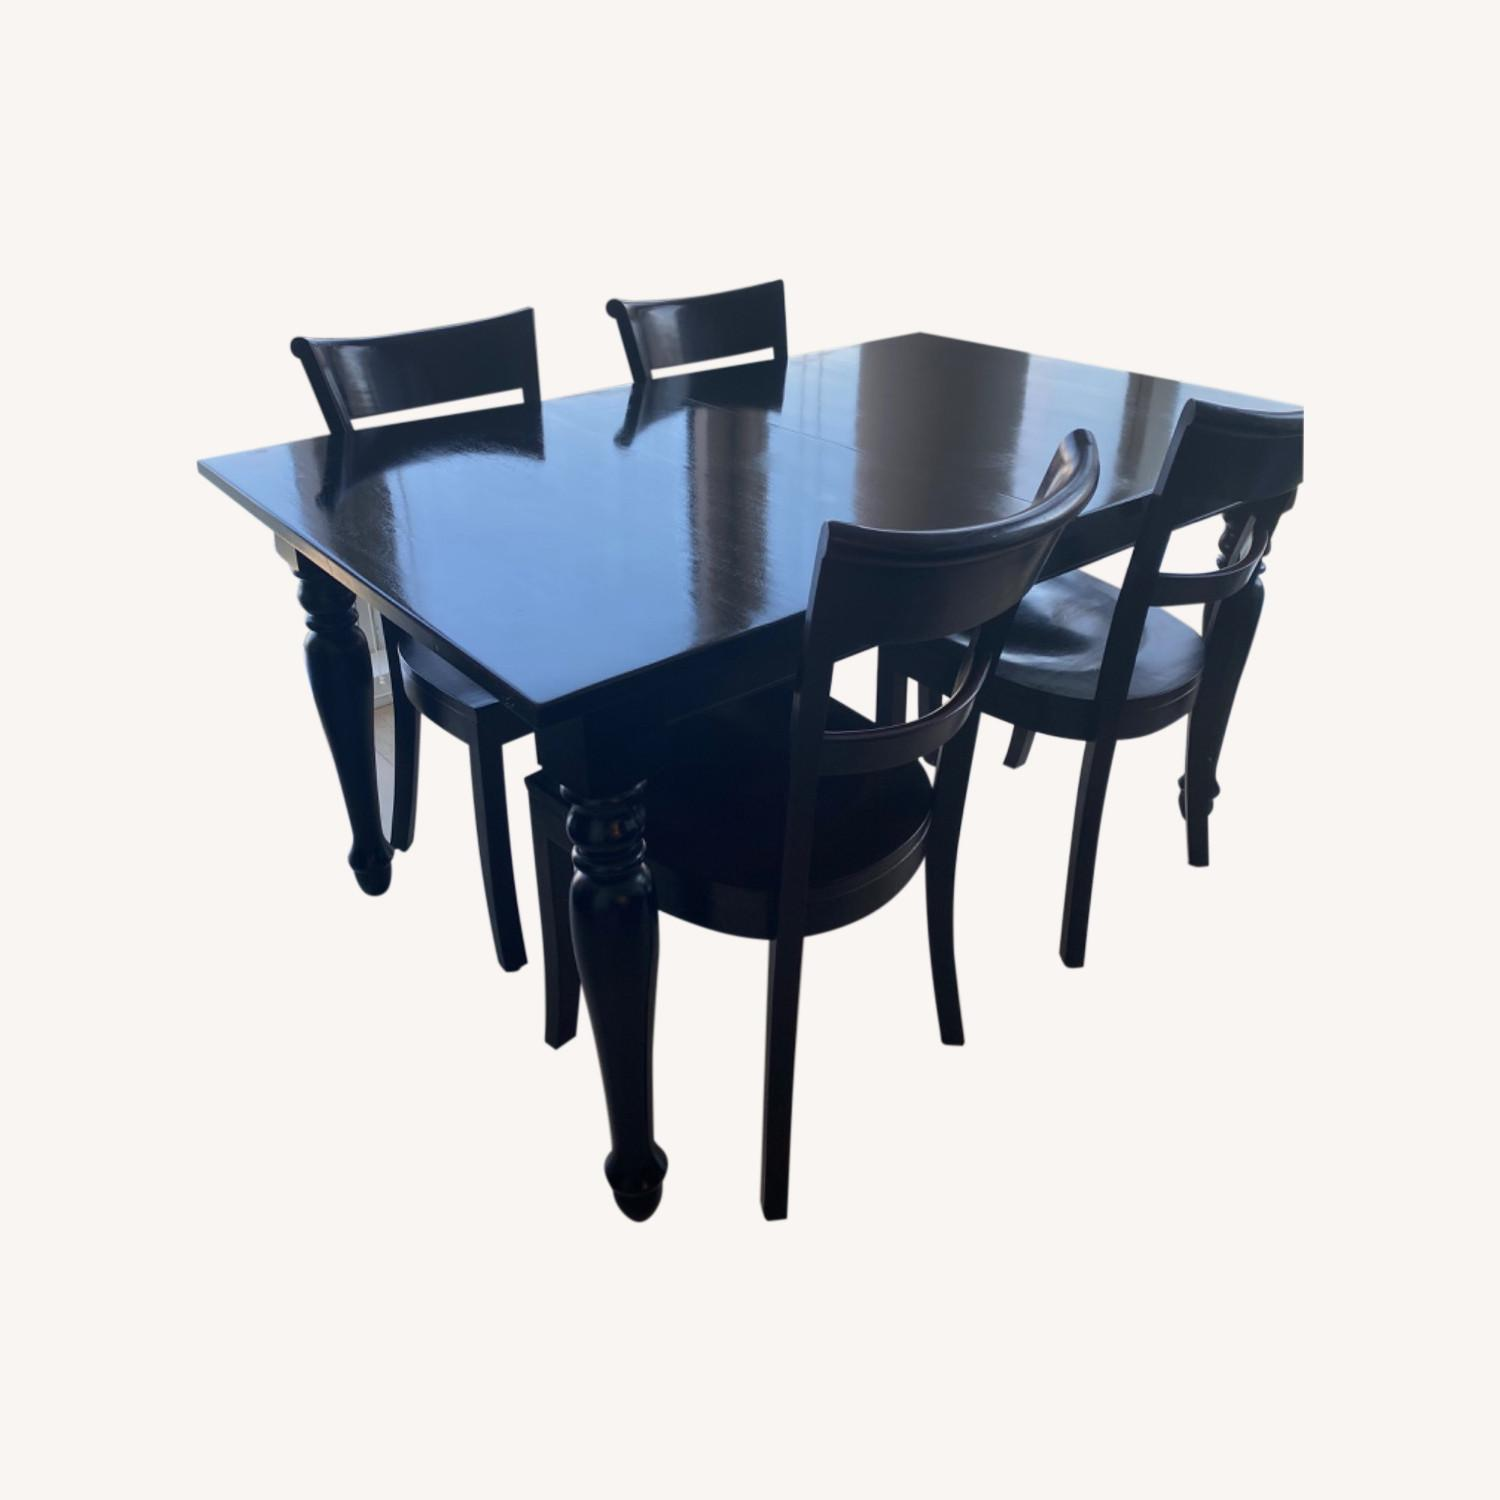 Crate & Barrel Kipling Table and 4 Chairs - image-0